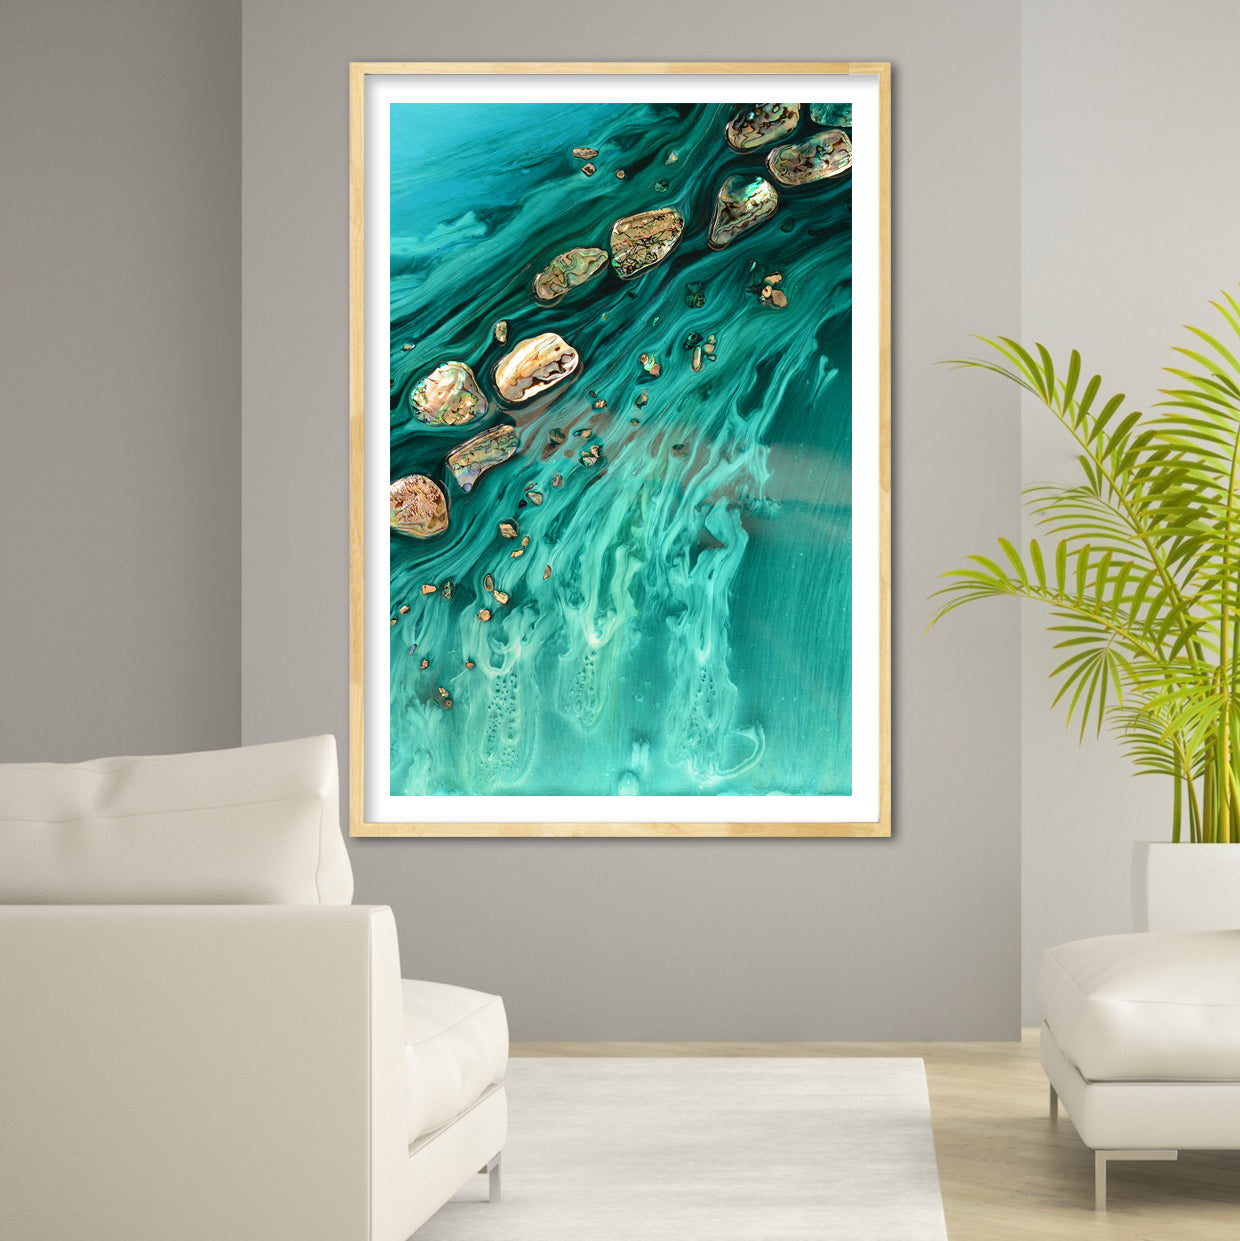 Abstract Ocean Artwork. Rise Above Seashells 1. Art Print. Antuanelle 4 Limited Edition Print